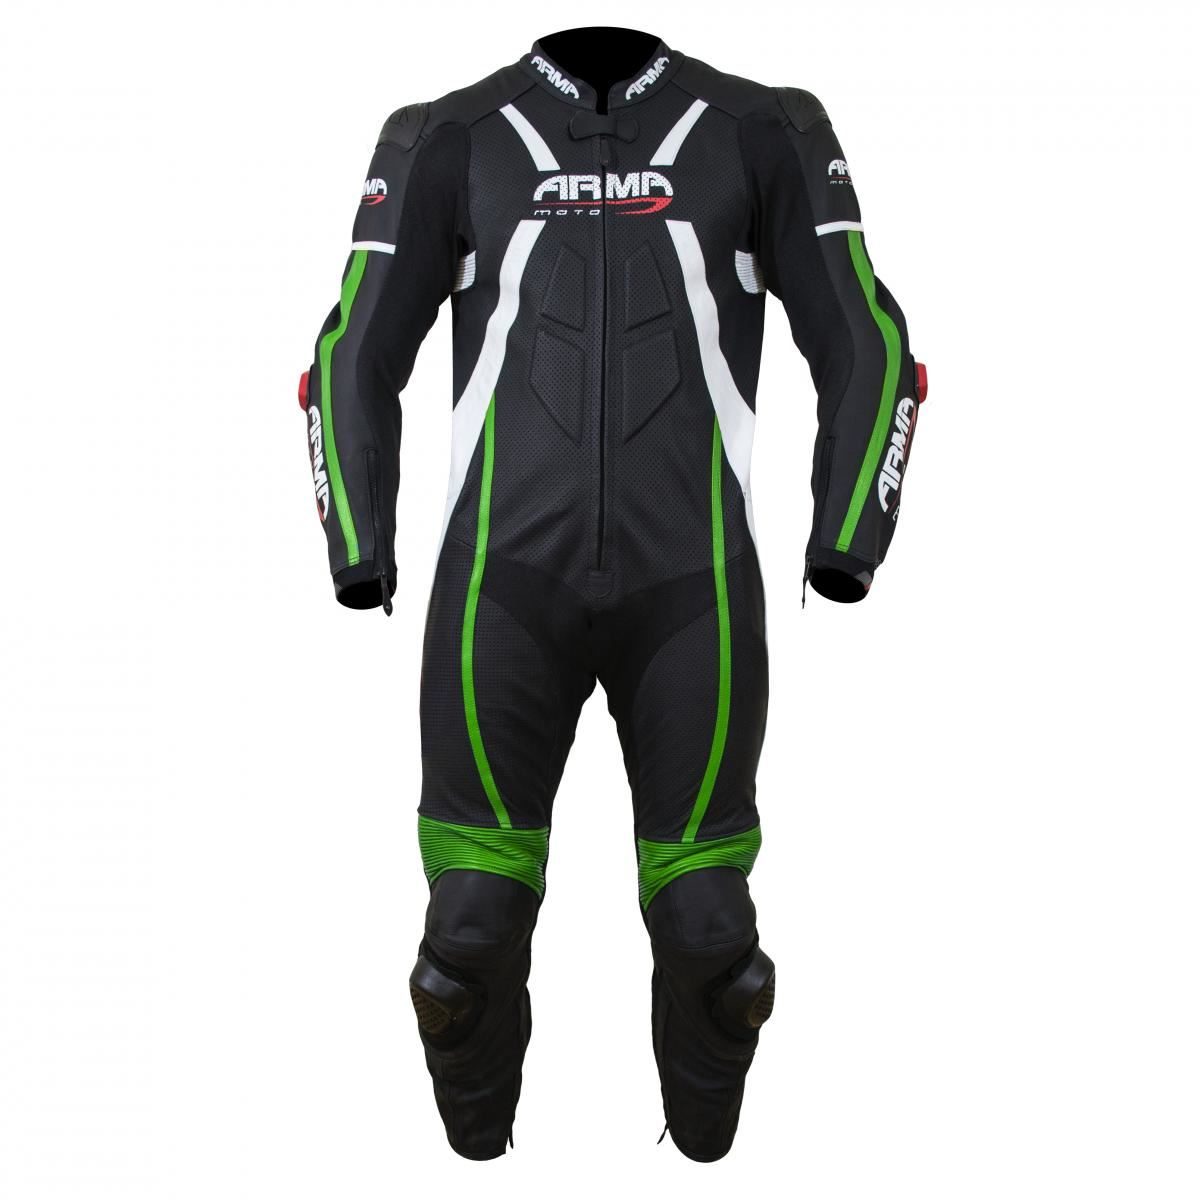 dfb40559402 Details about ARMR Harada R Mens Leather Race Suit - Black/Green